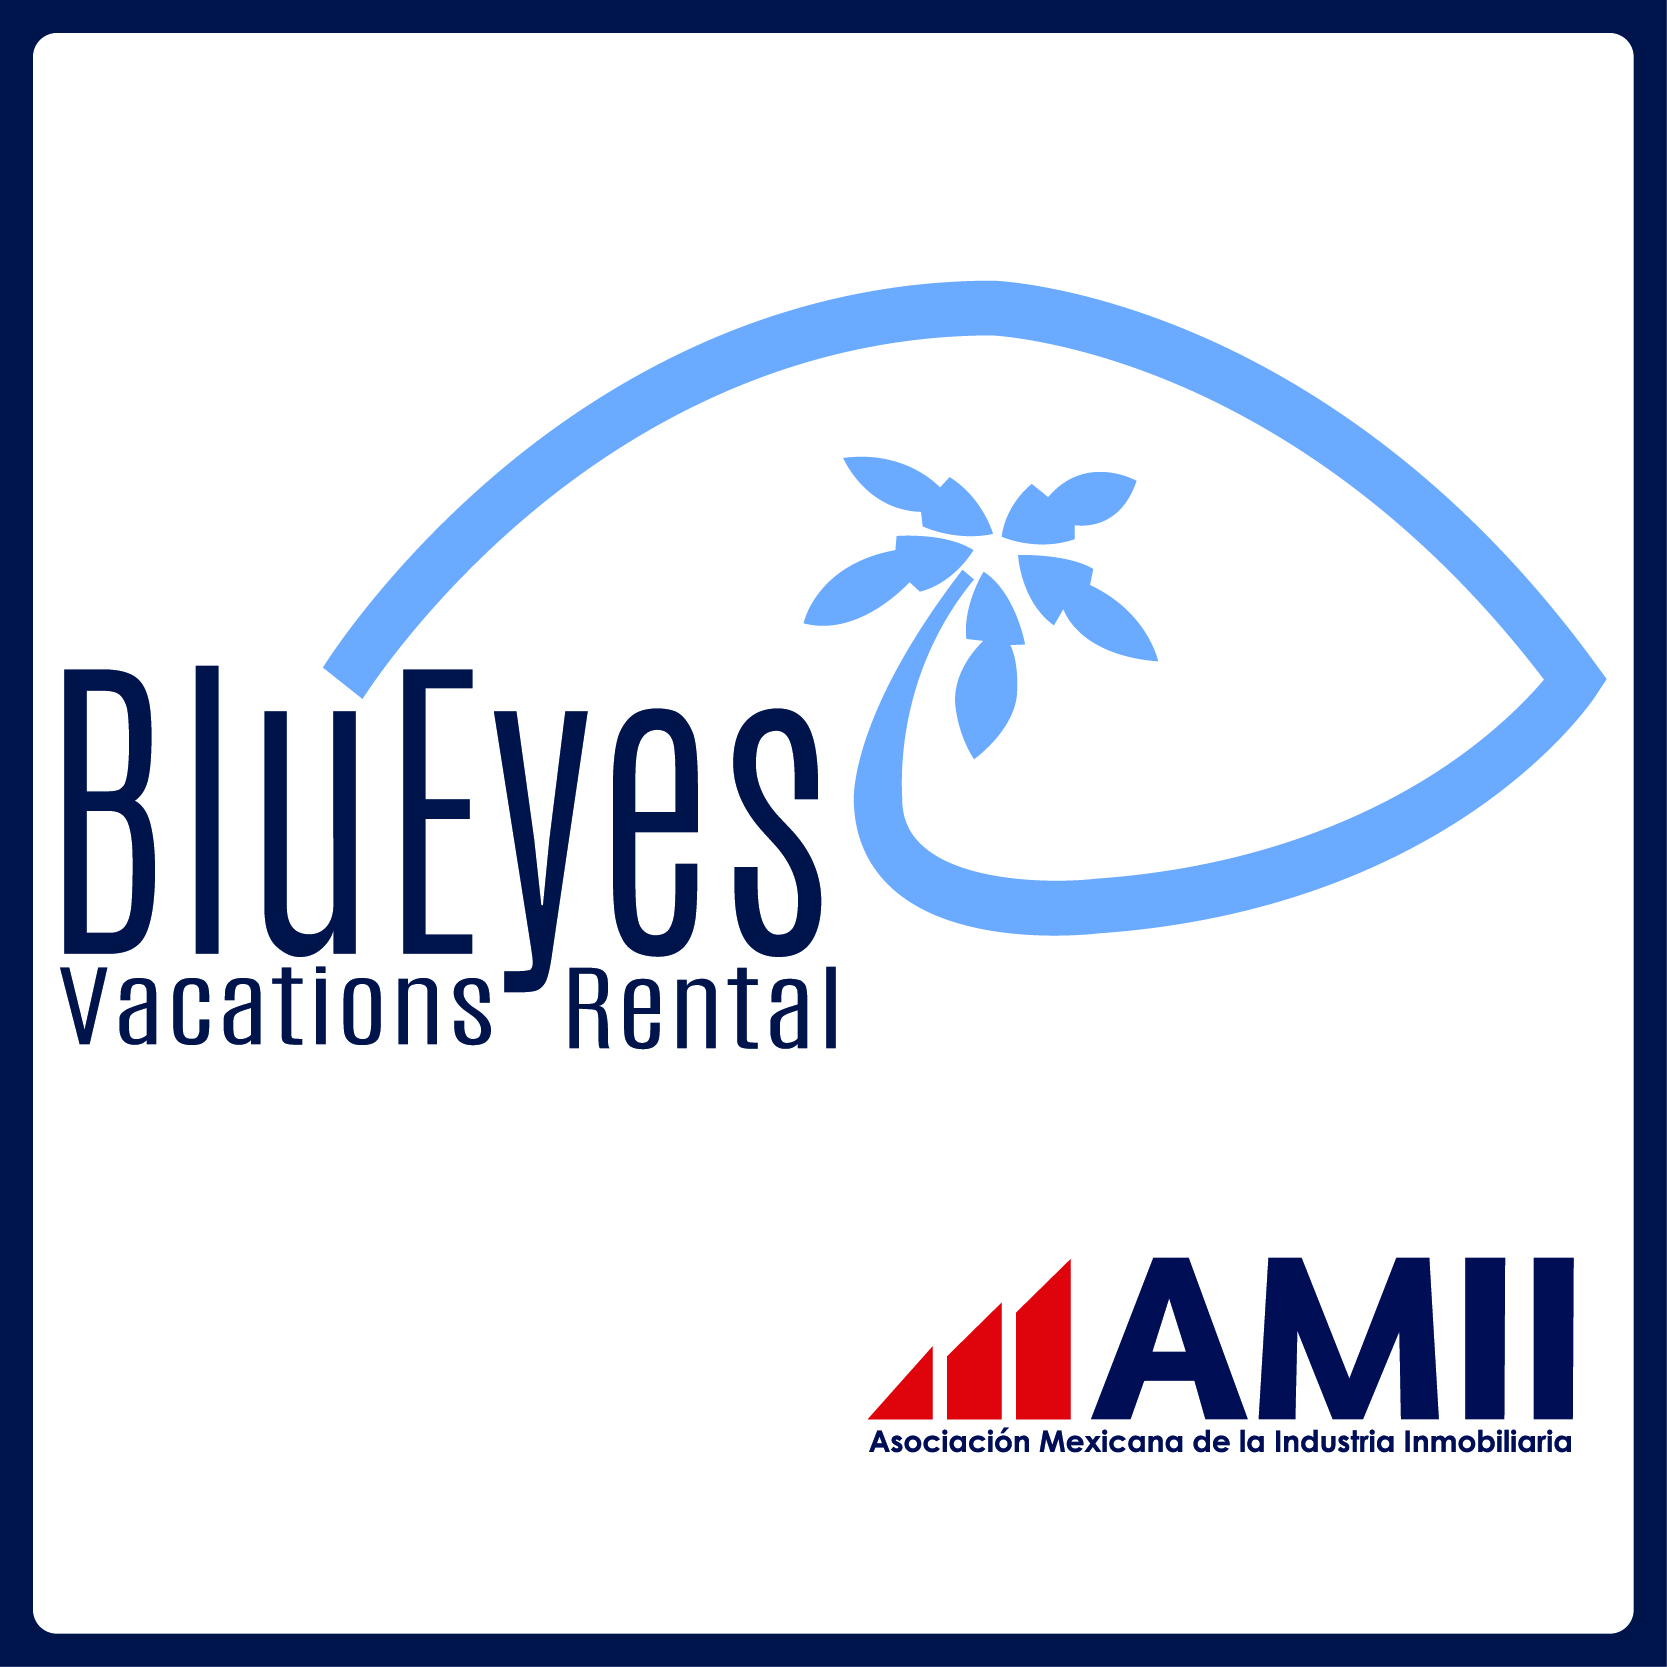 Blueyes Vacations